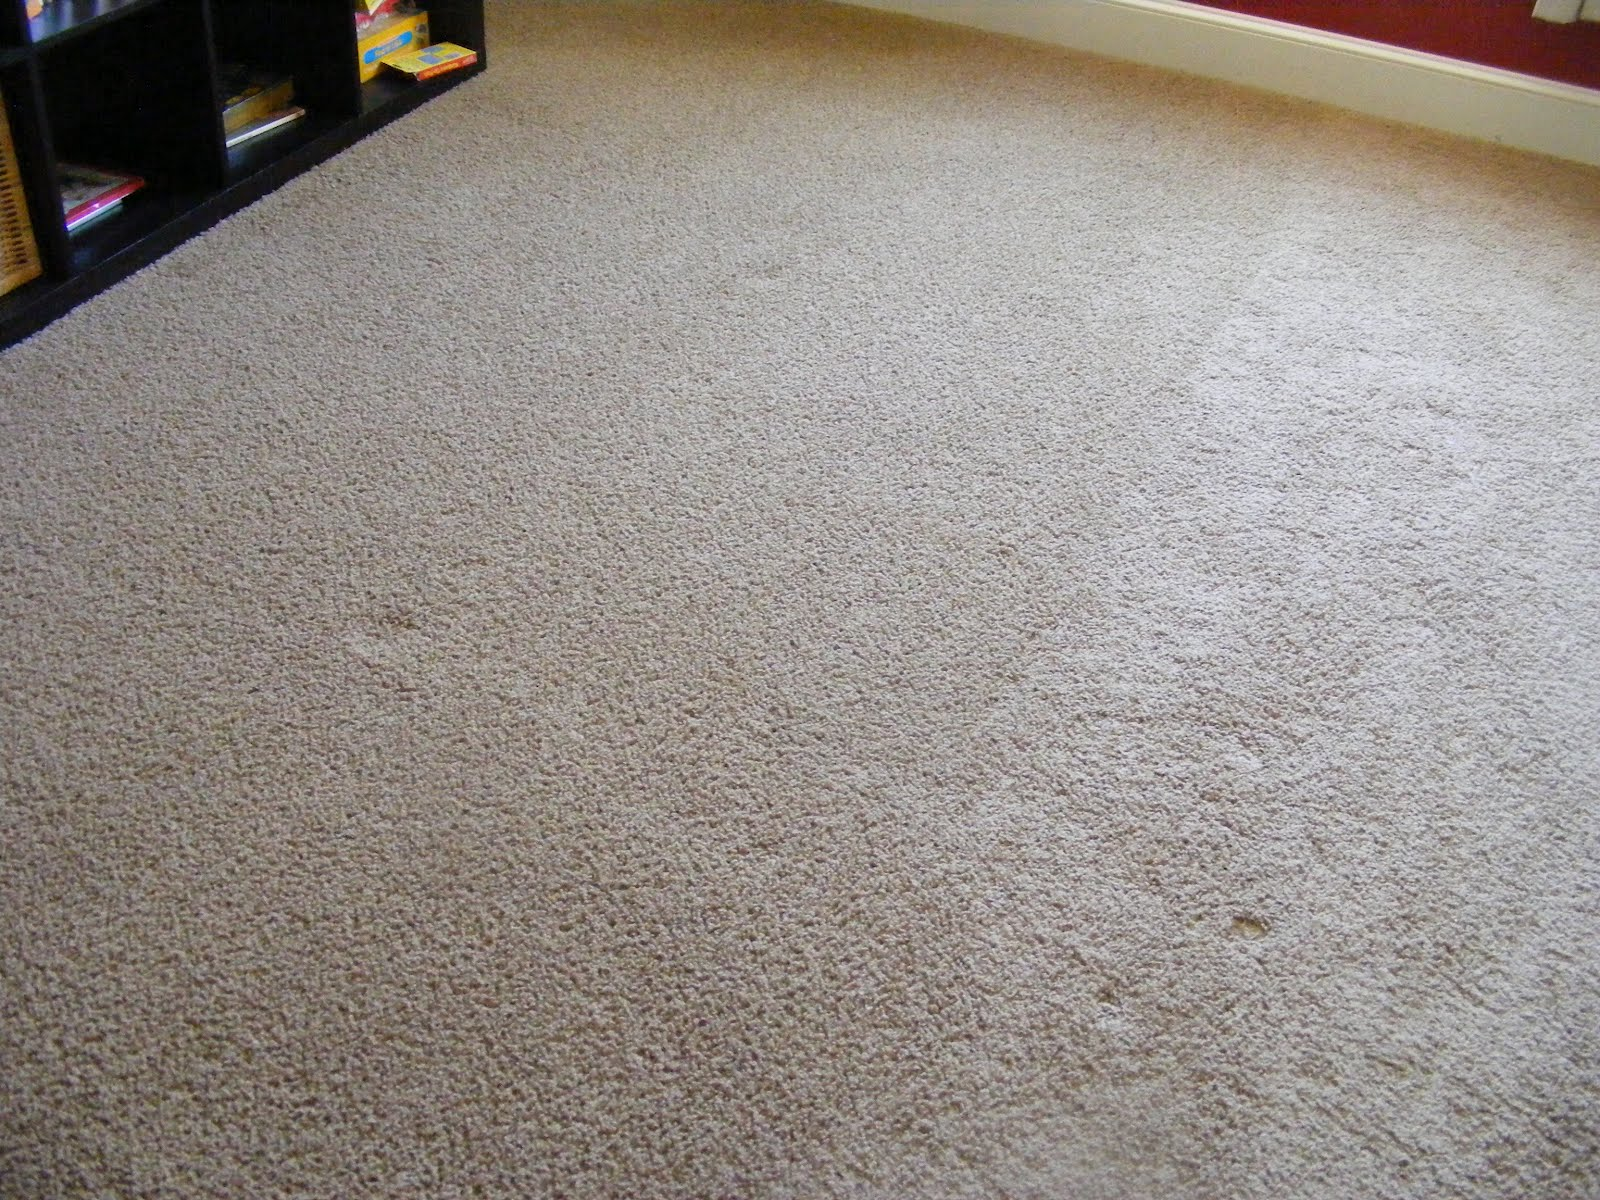 center Cleaning Your Carpet Without a Carpet Cleaner center